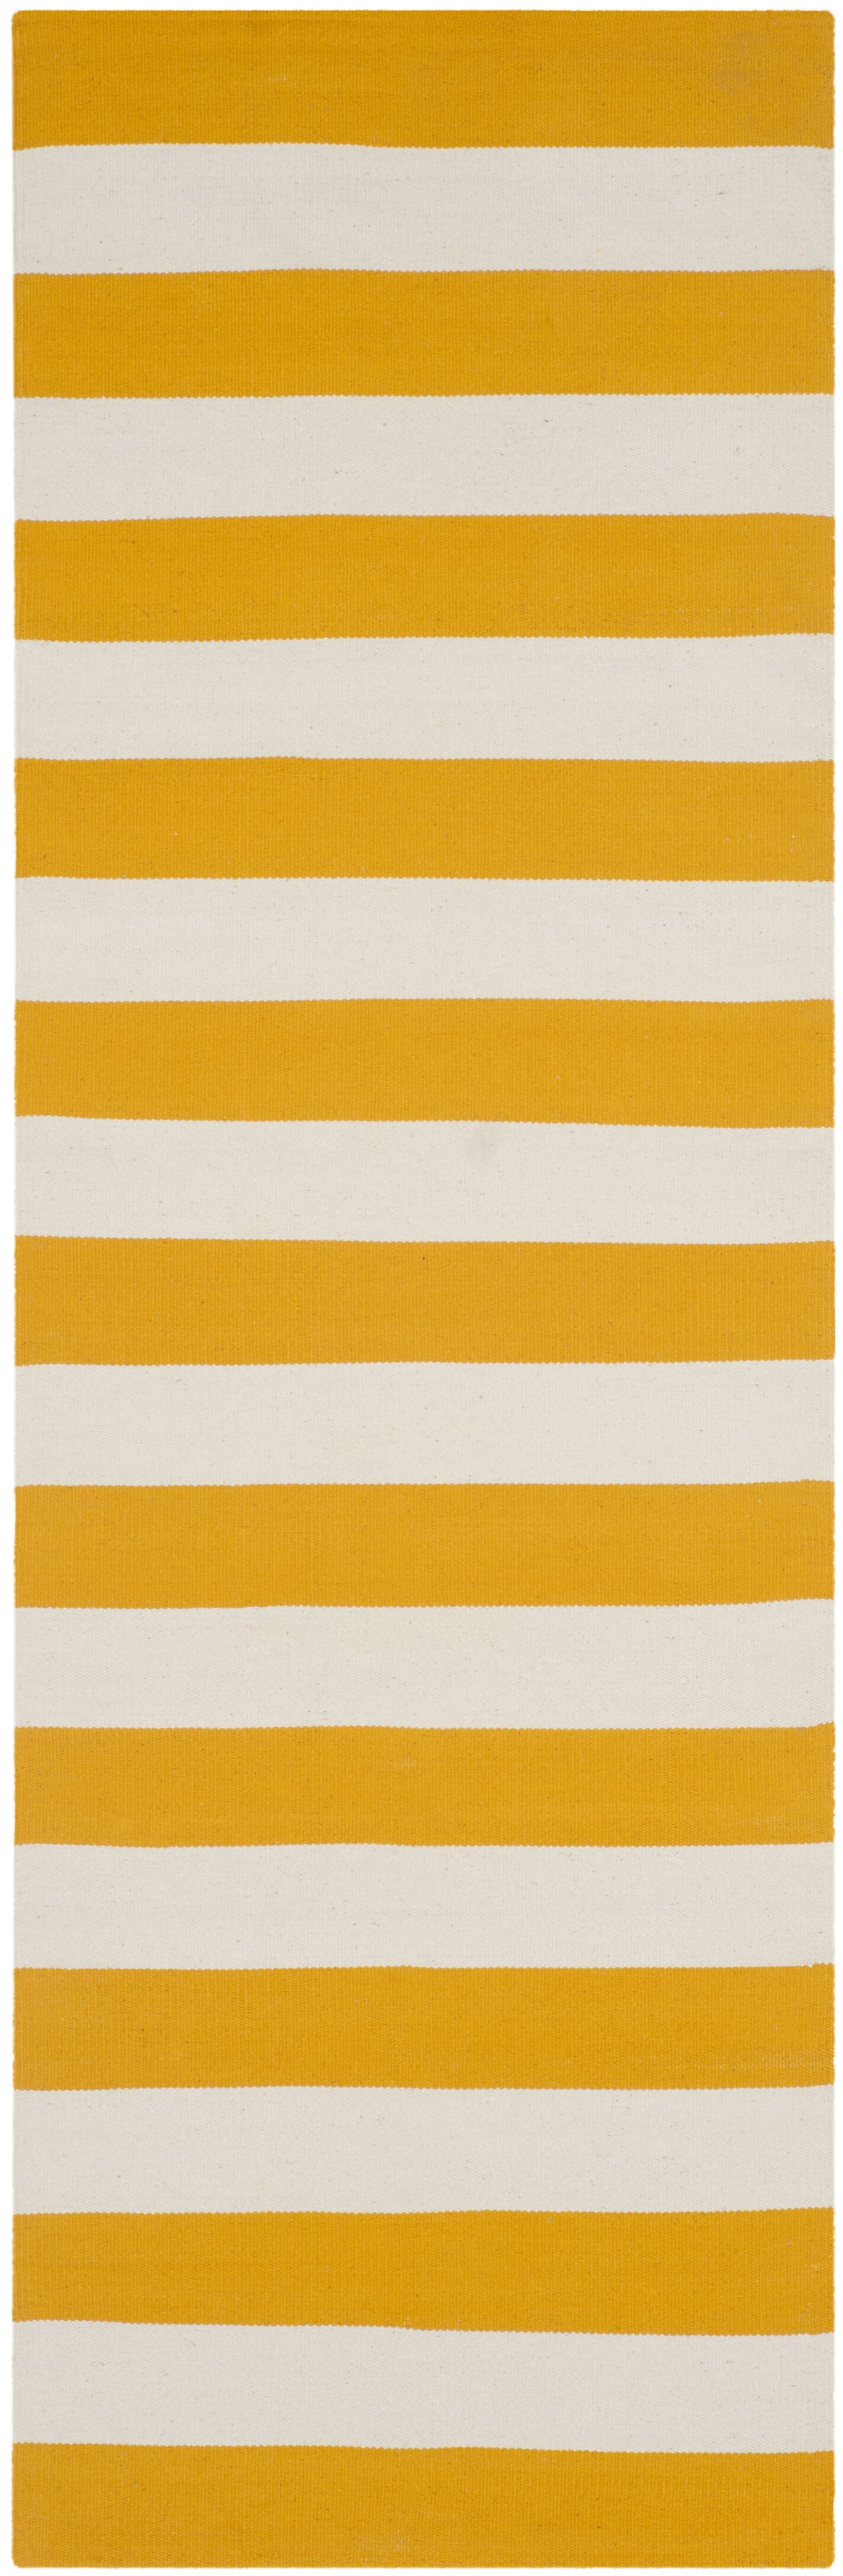 Ike Hand-Woven Yellow/White Area Rug Rug Size: Runner 2'3